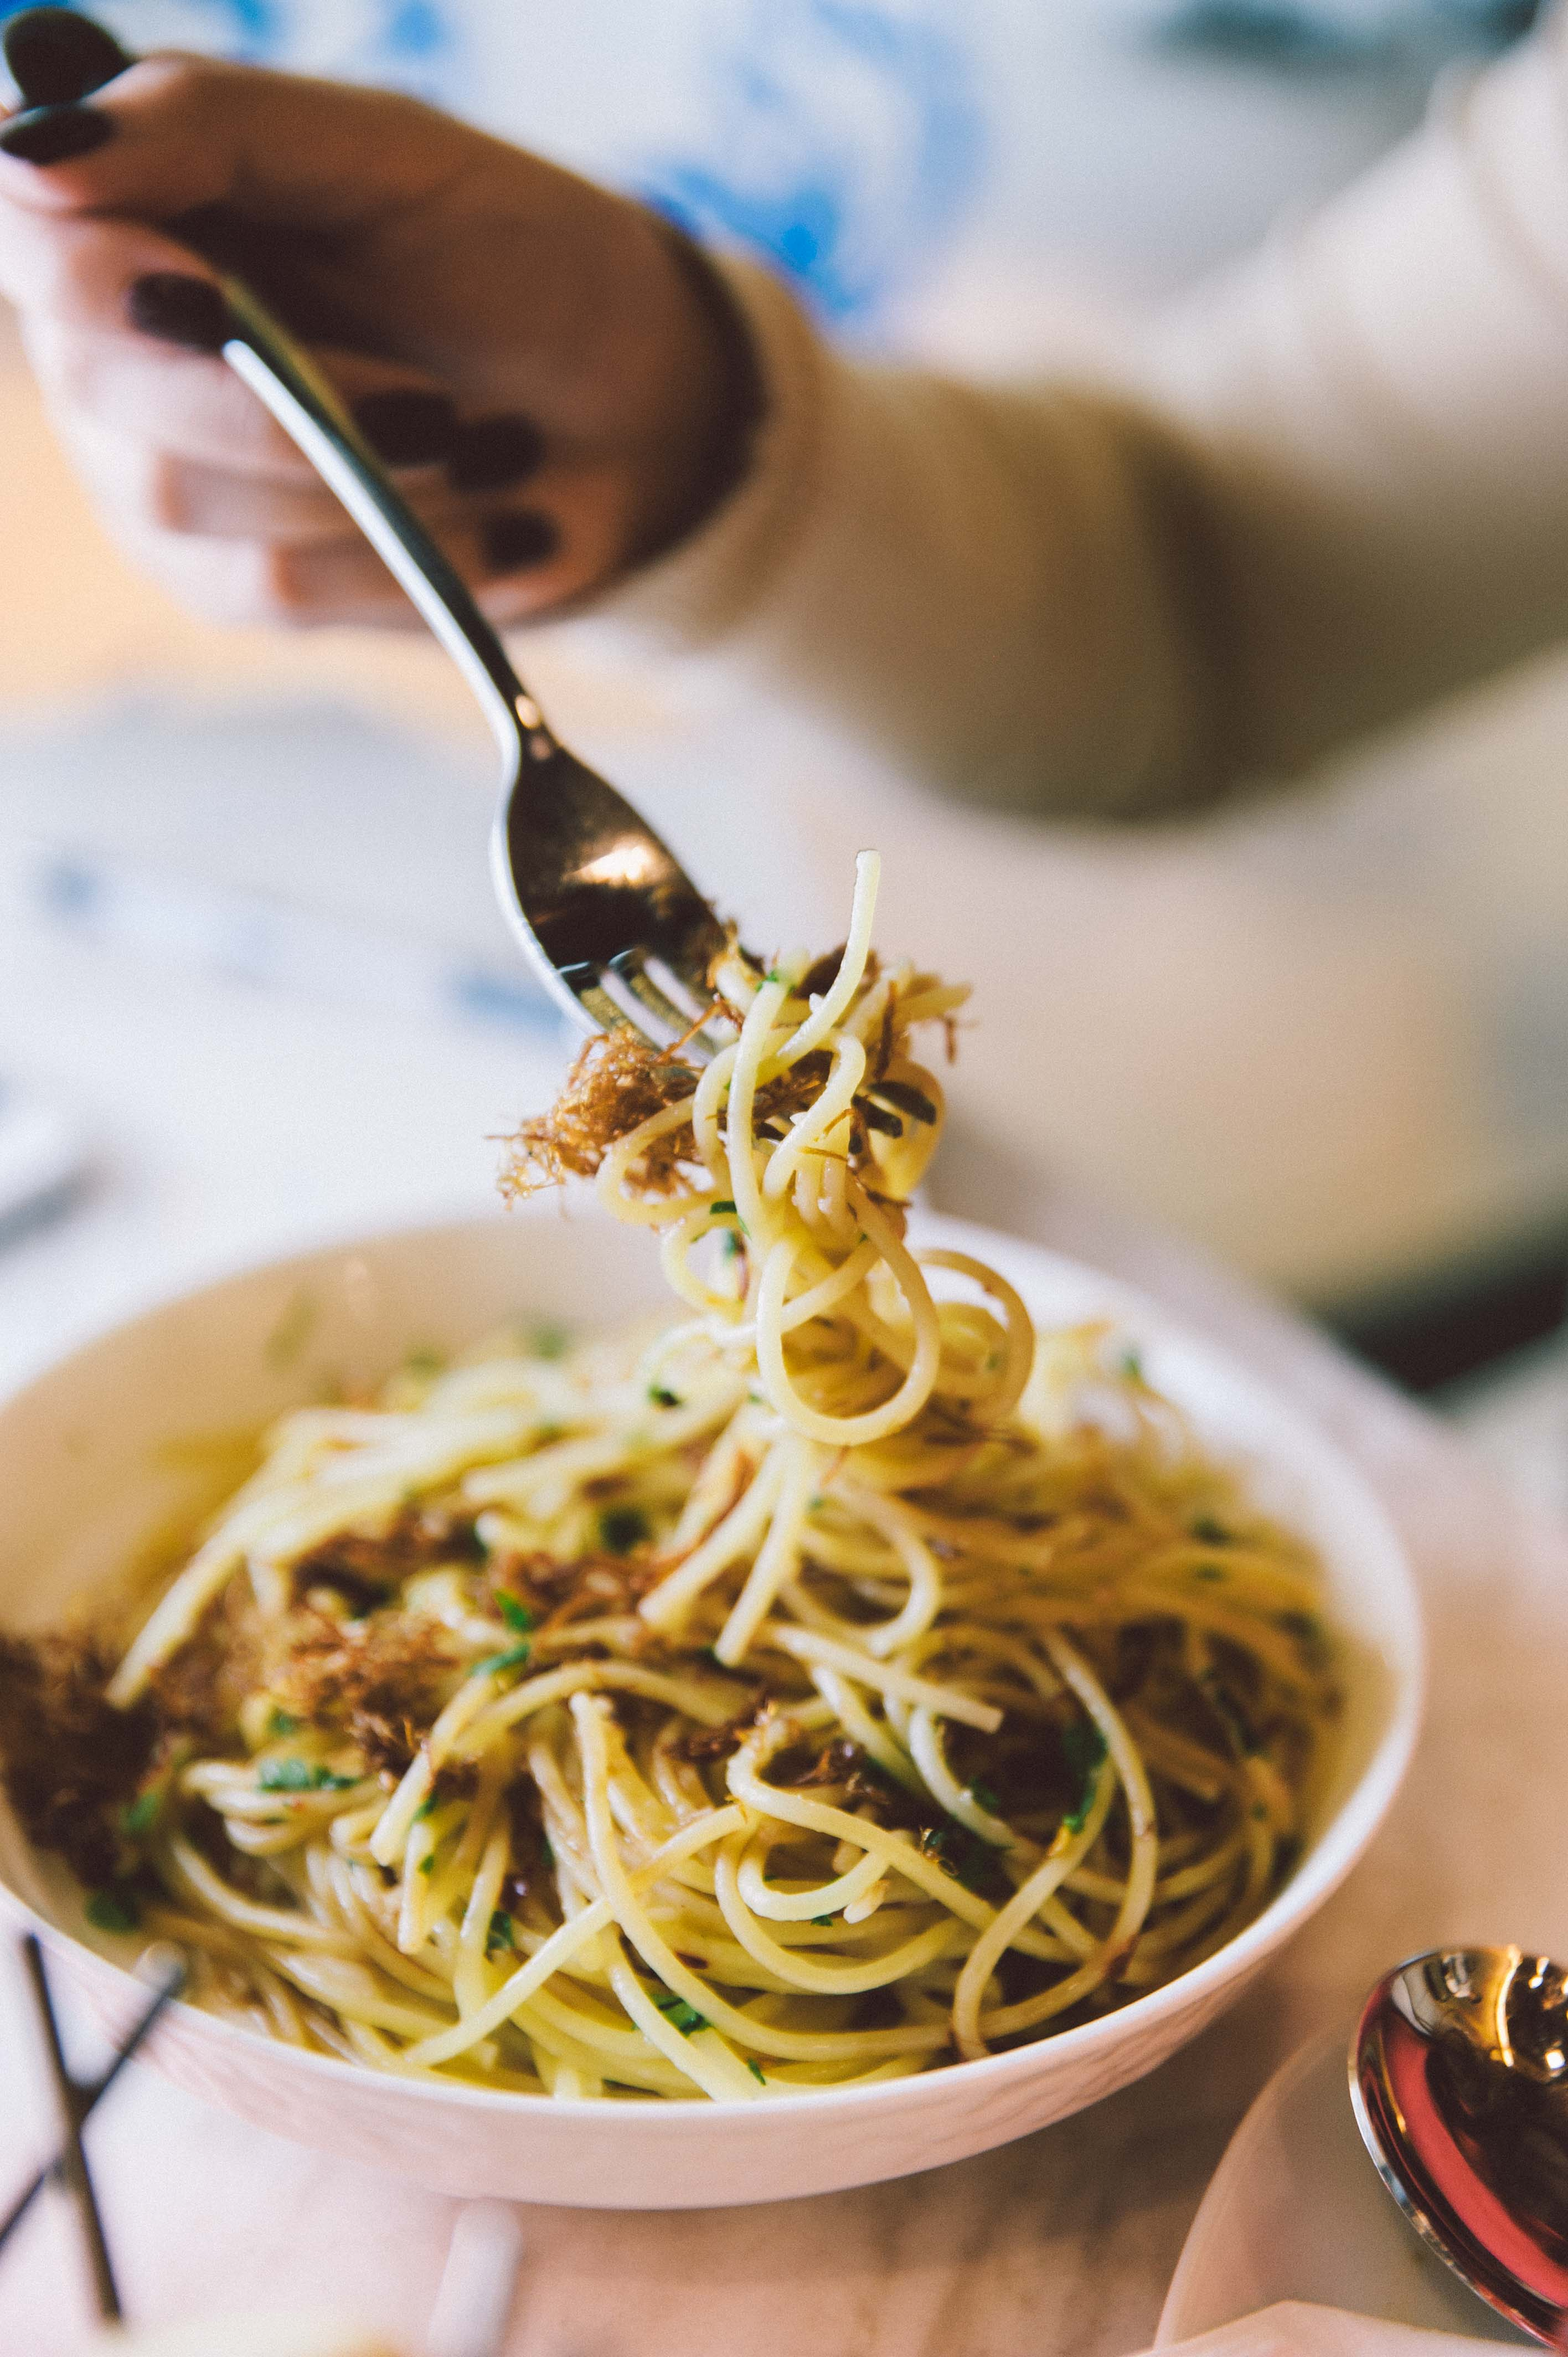 The Duck Olio merges the distinct flavor of duck floss, garlic, and spice.